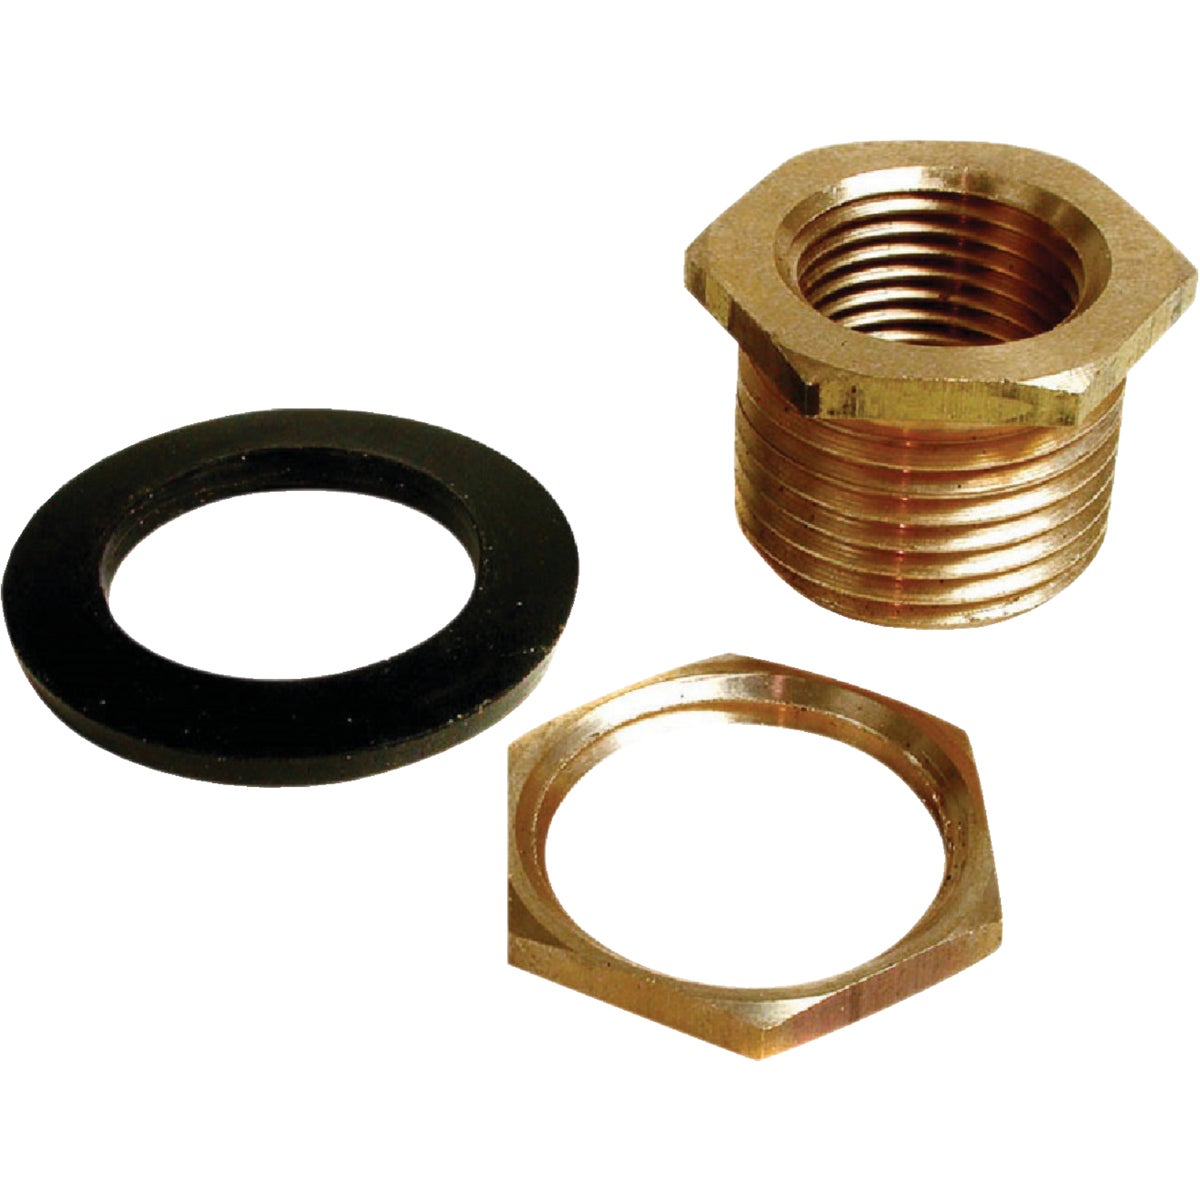 COOLER DRAIN BRASS - 9229 by Dial Manufacturing